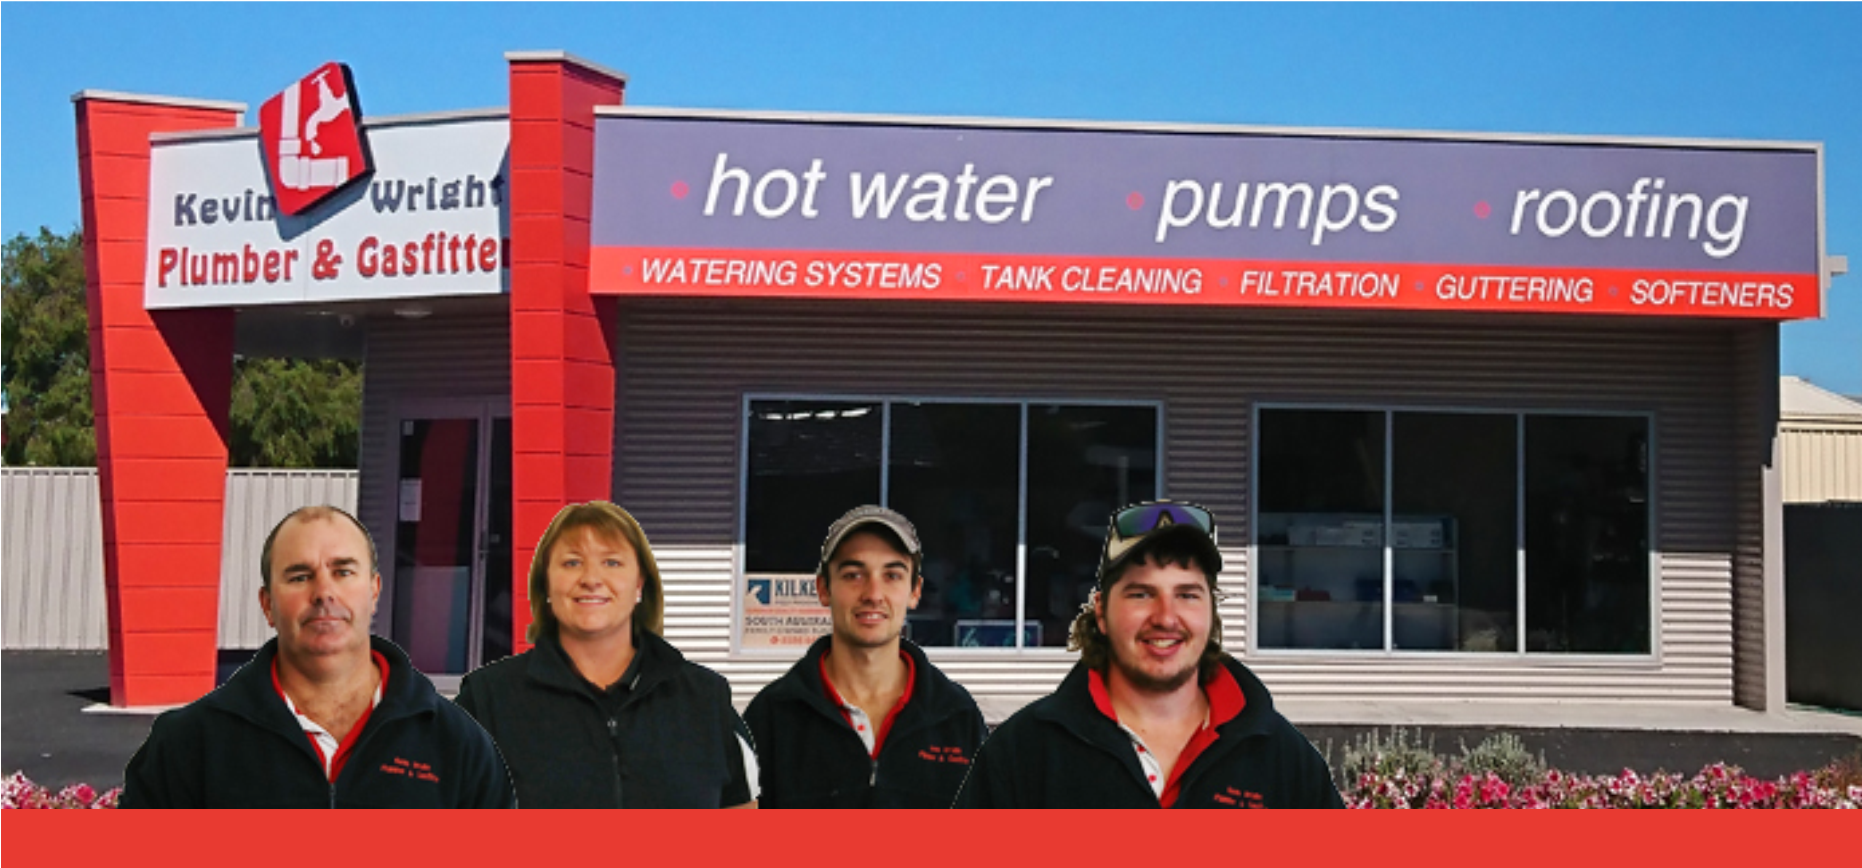 Welcome to Kevin Wright Plumber